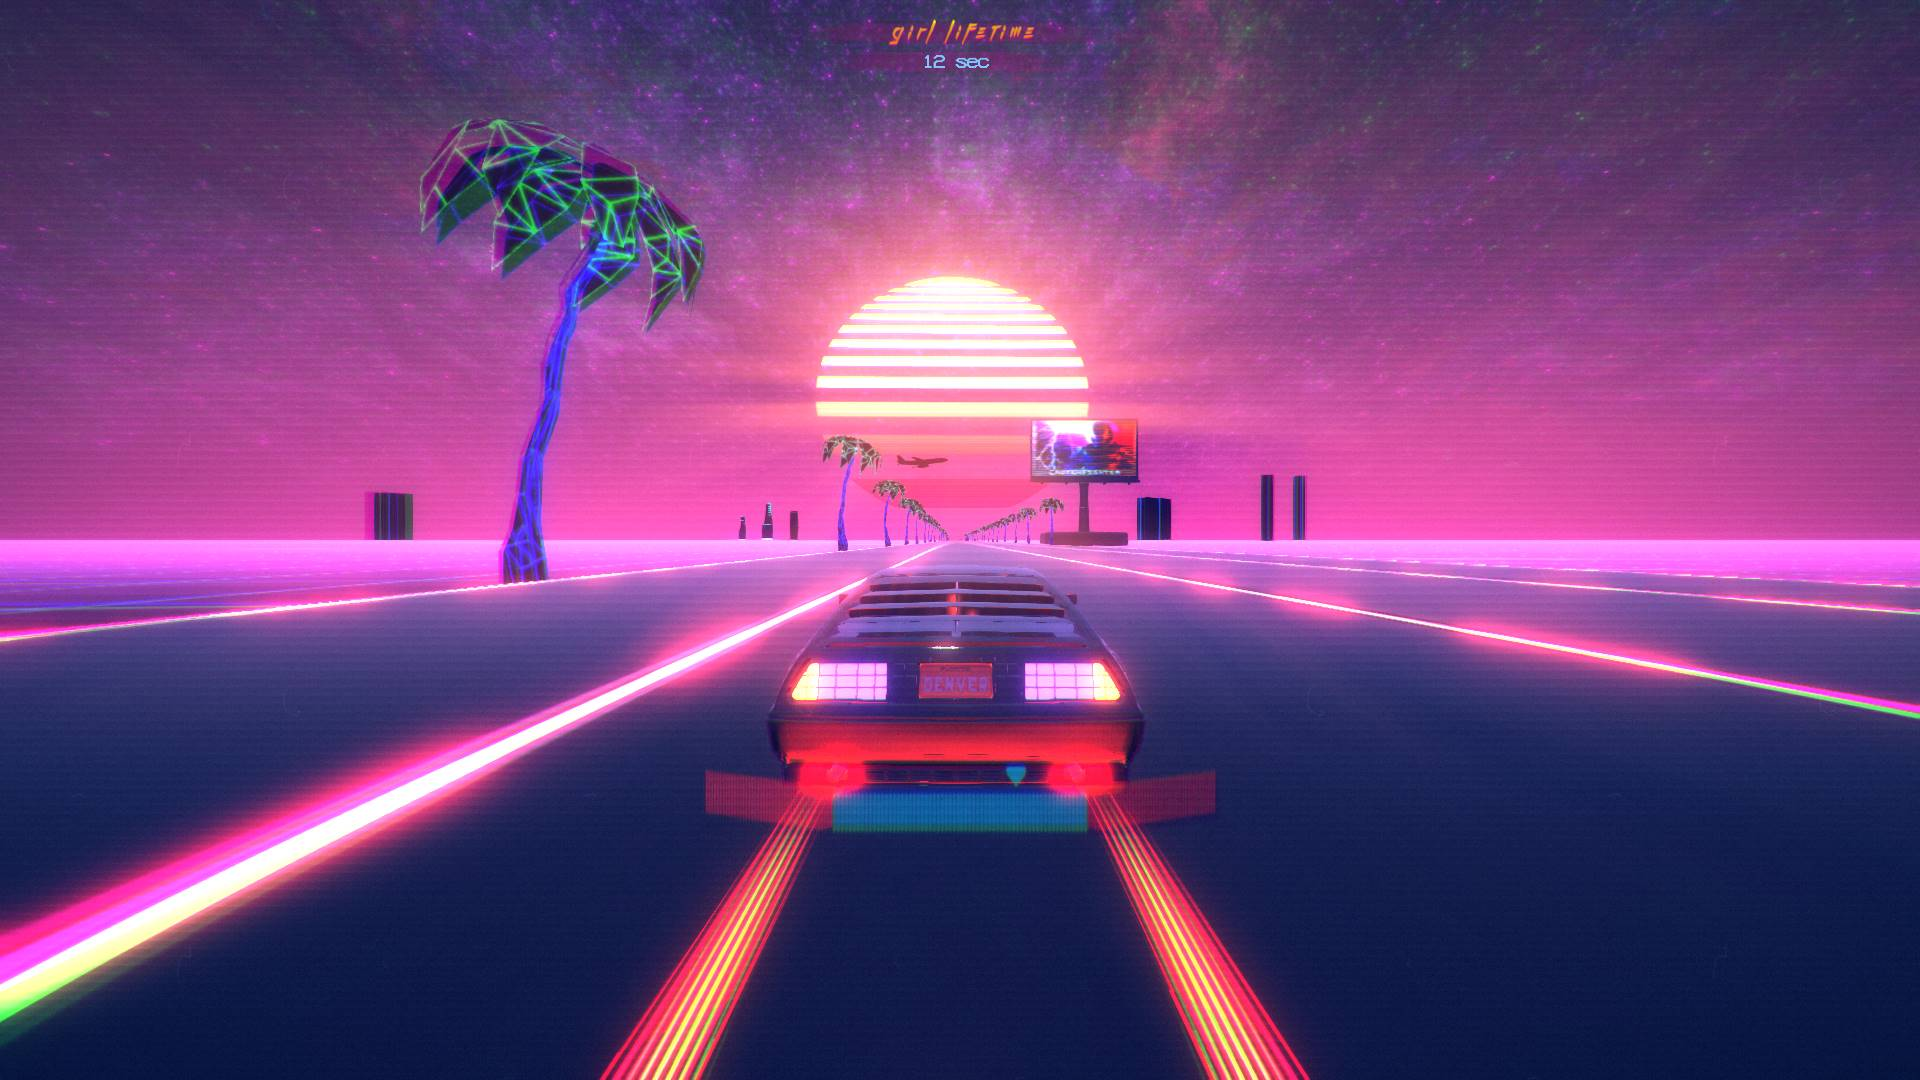 Chill Wave Car Wallpaper Outdrive On Steam